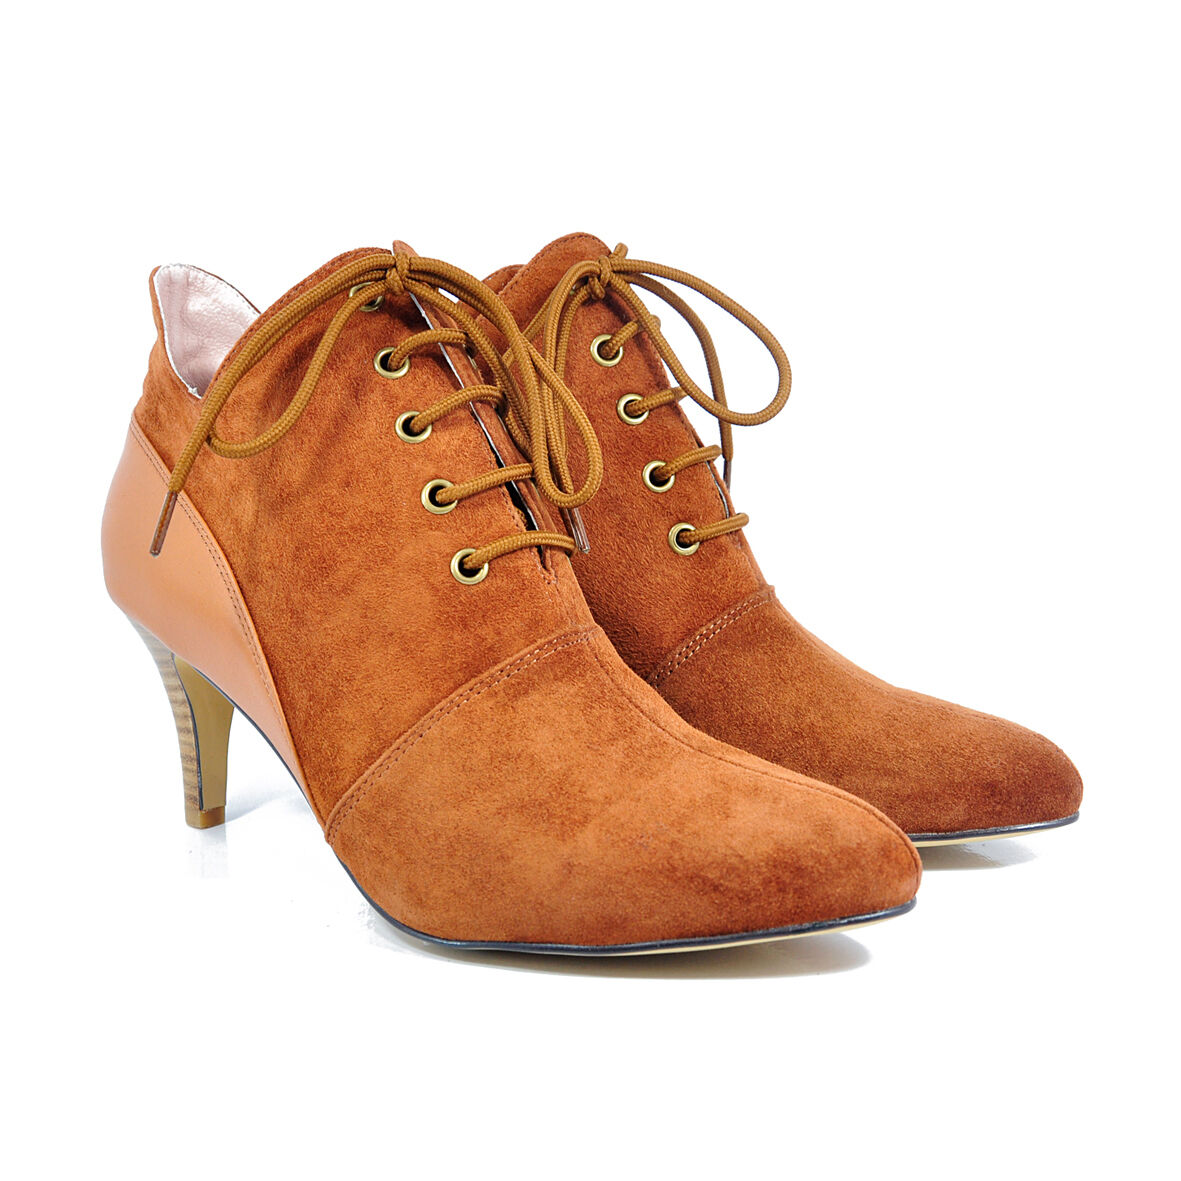 Gentleman/Lady PERONE SHOE BOOT in Black, Tan Crazy price Affordable retail price